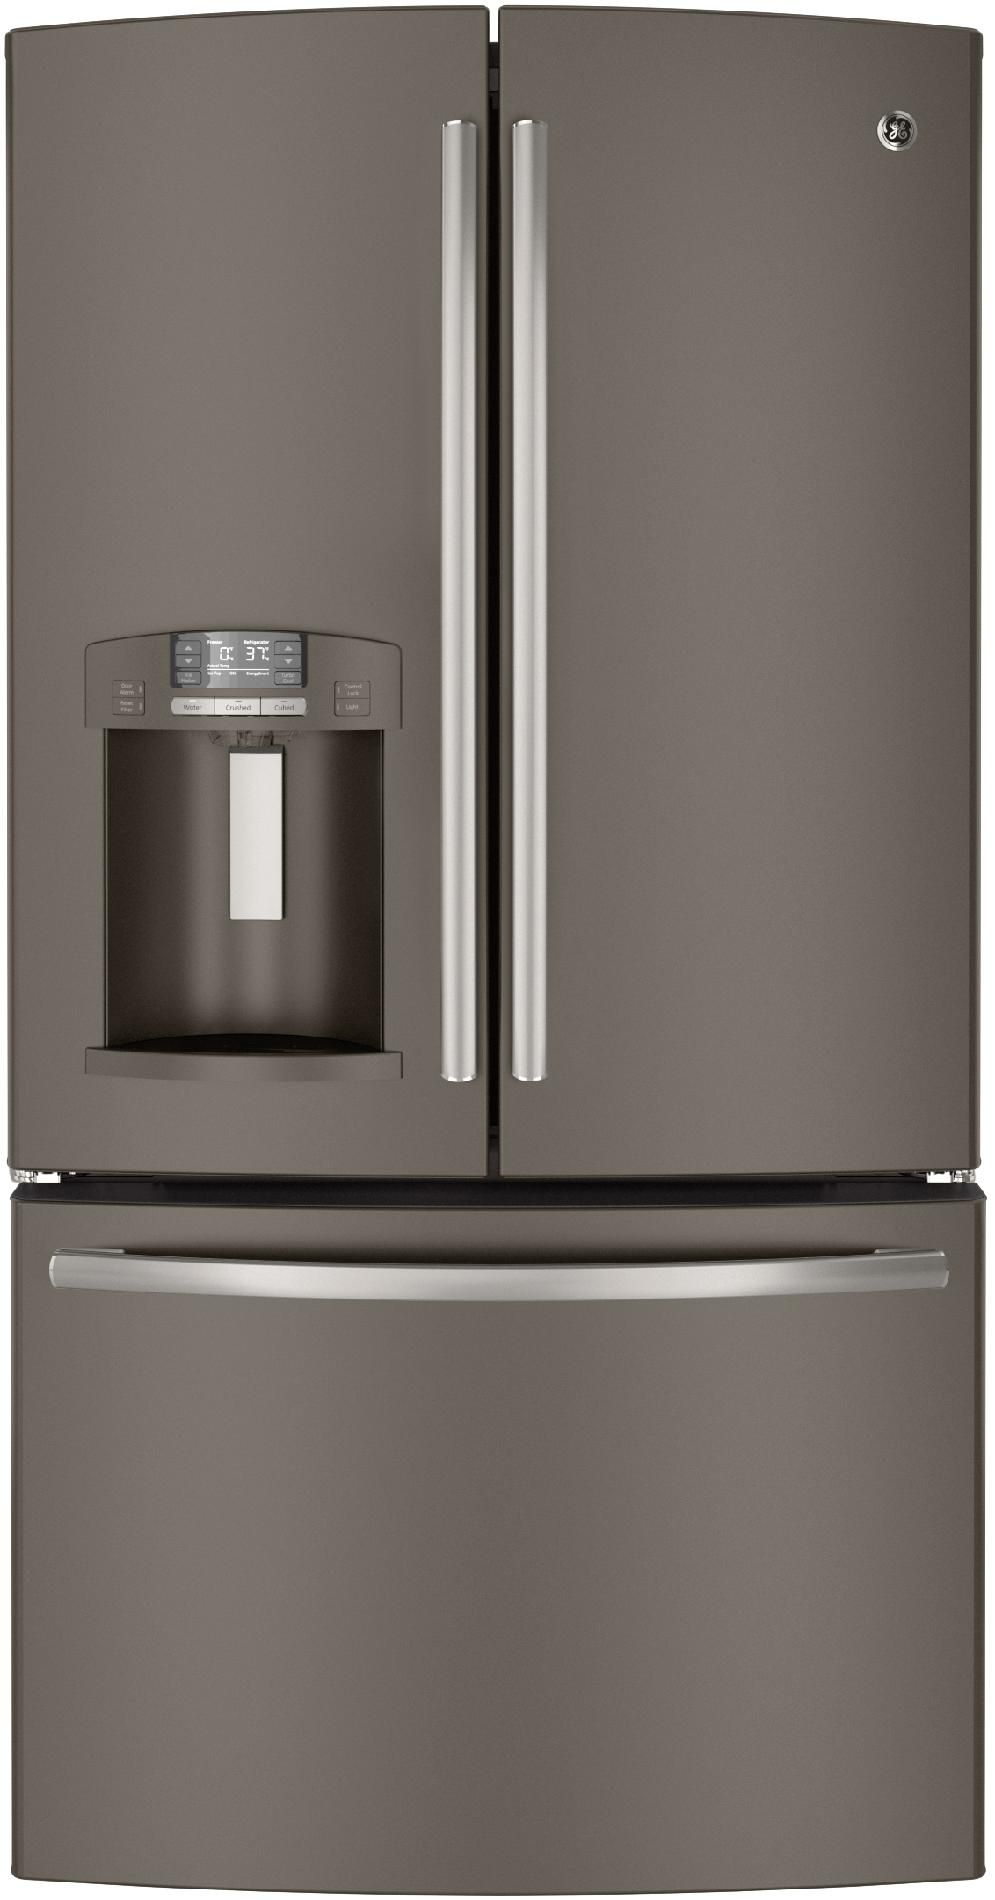 The Spacious 286 Cu Ft Ge Gfe29hmees French Door Refrigerator Is